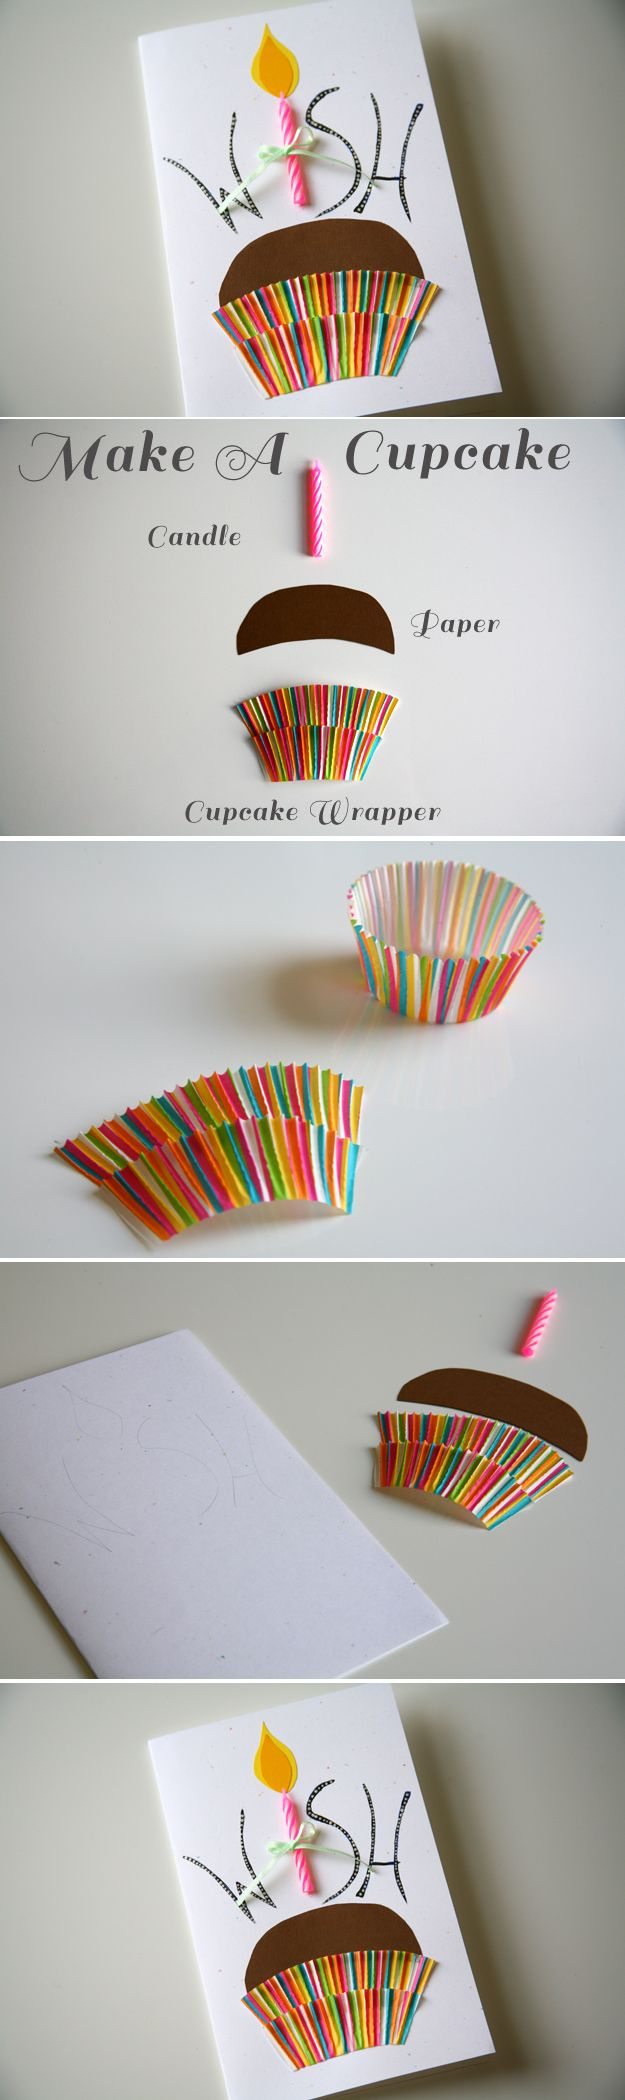 Make this simple and precious birthday invitation using only a few items that you probably have around the house (Pinning for future reference because I like the idea of layering the cupcake wrapper. Skirt? We'll see... --Misty)